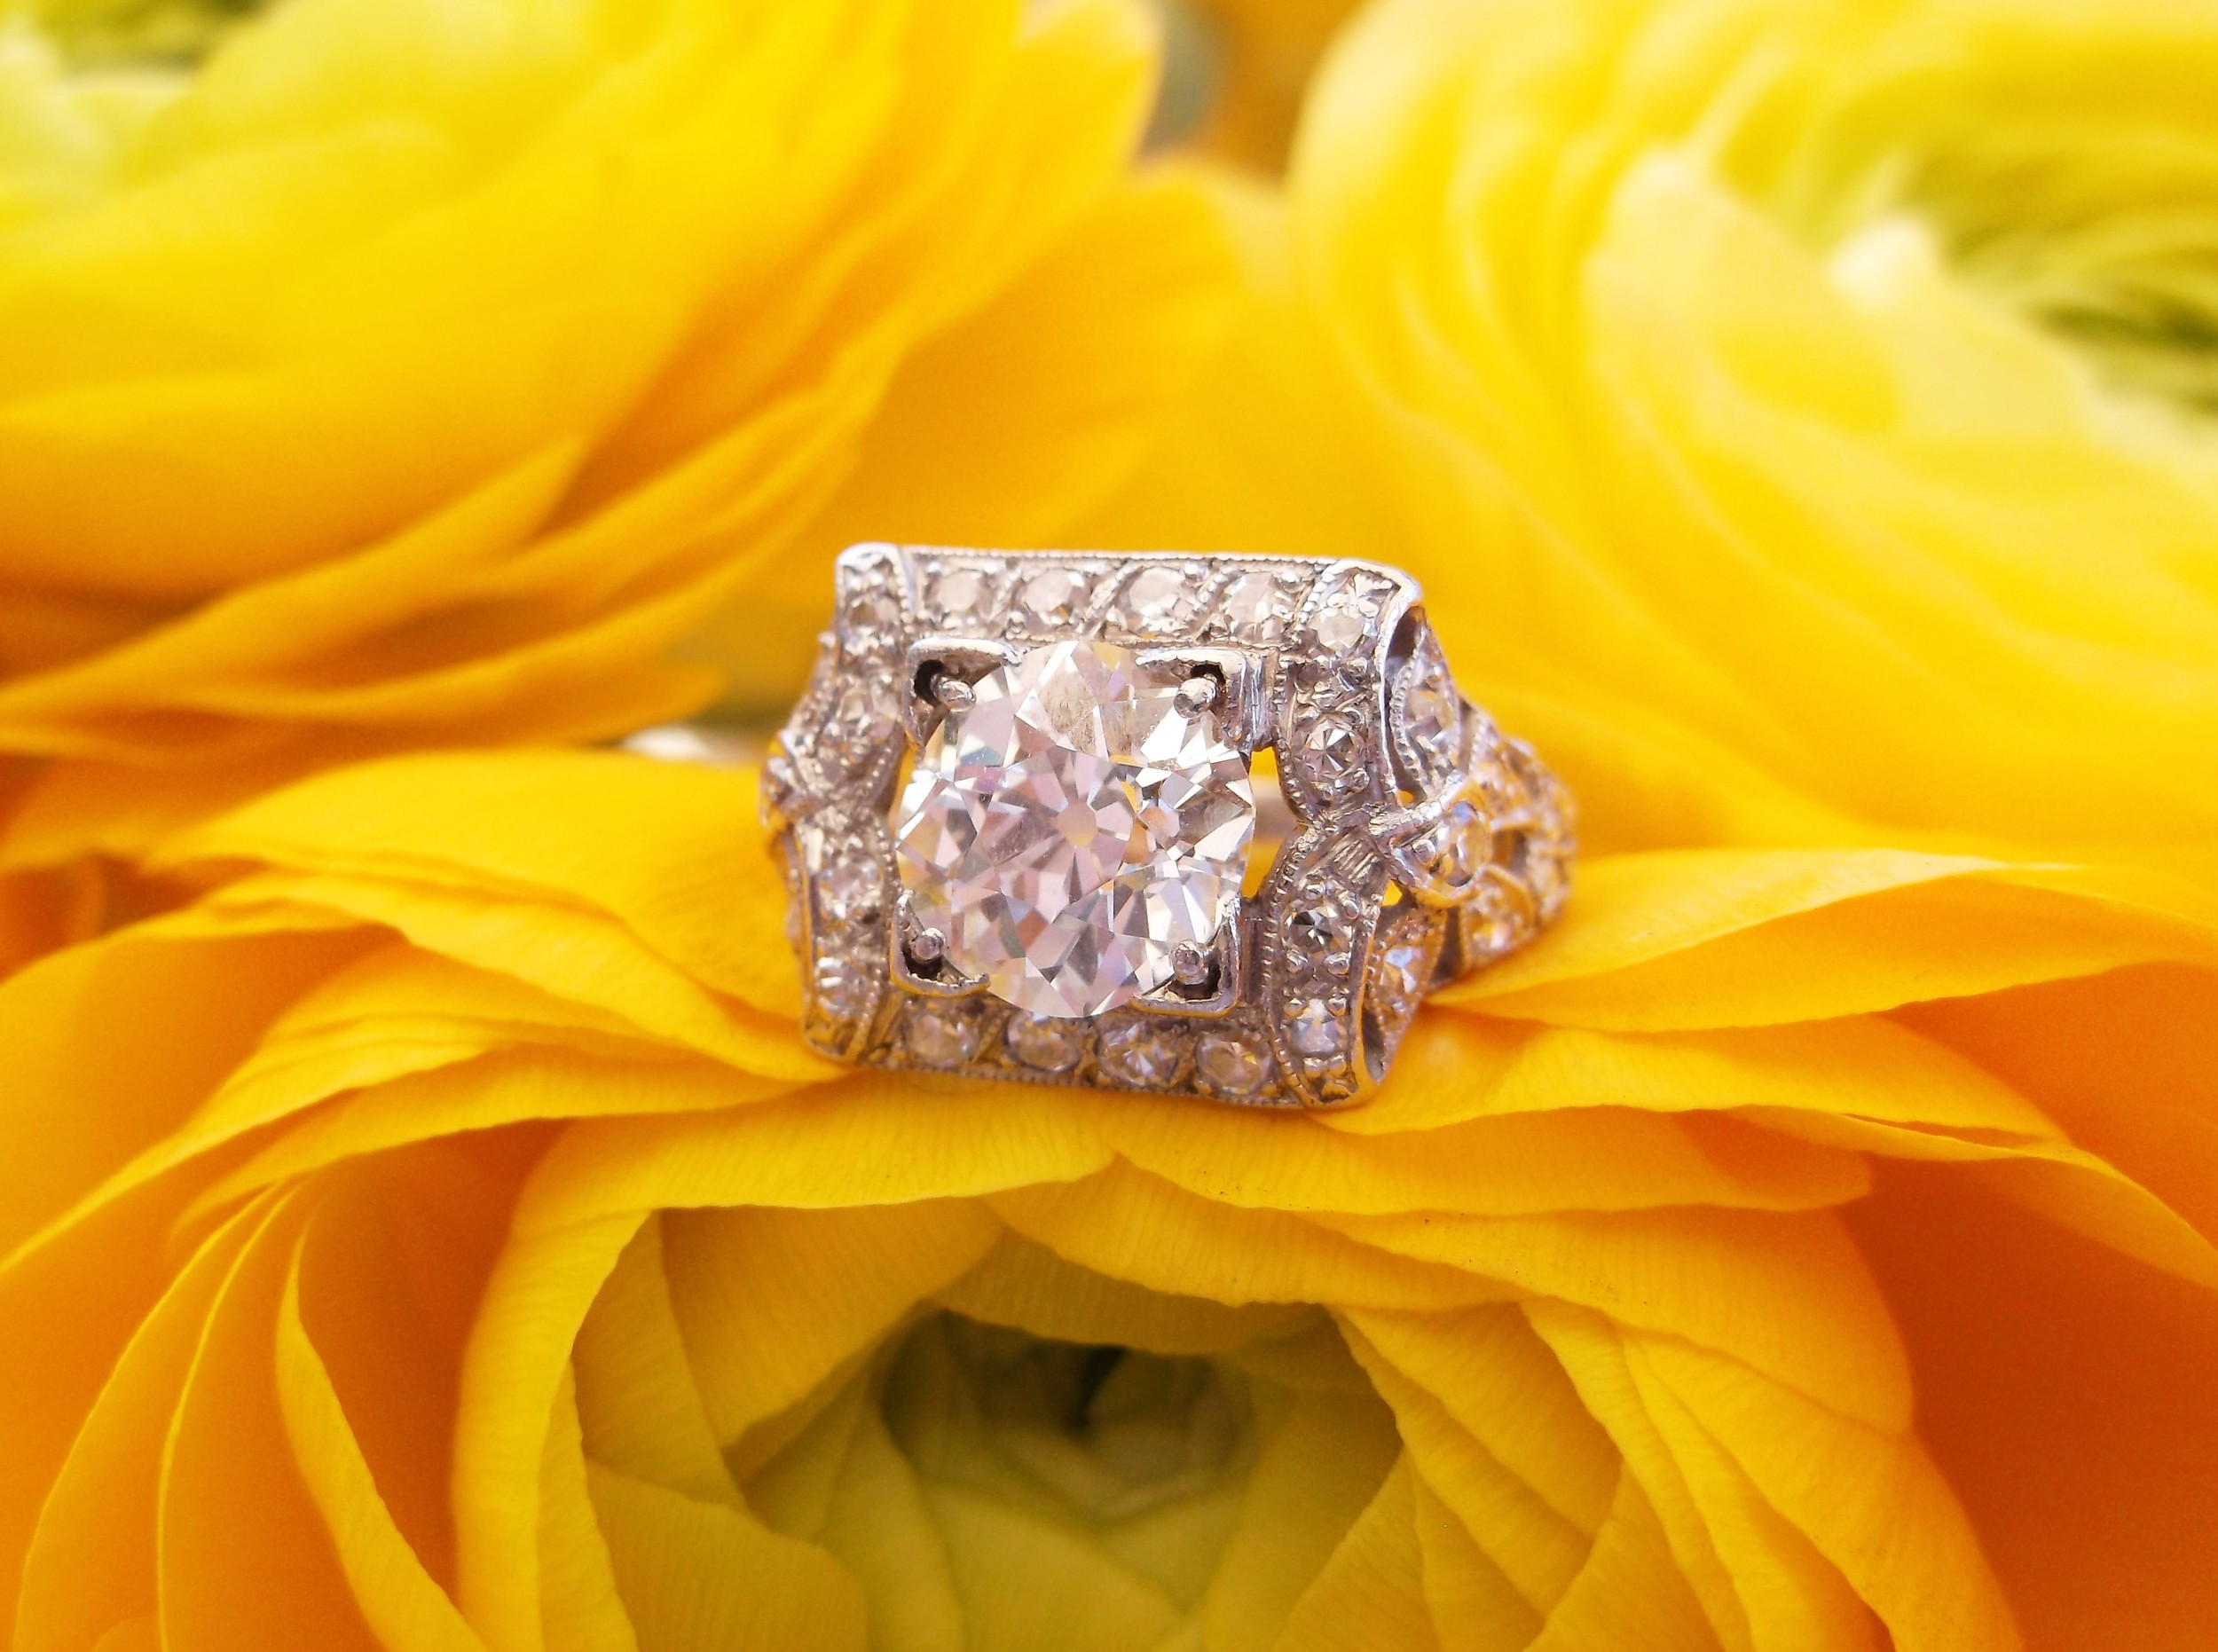 SOLD - Beautifully intricate 1920's 1.46 carat Old European cut diamond set in a platinum and diamond mounting.